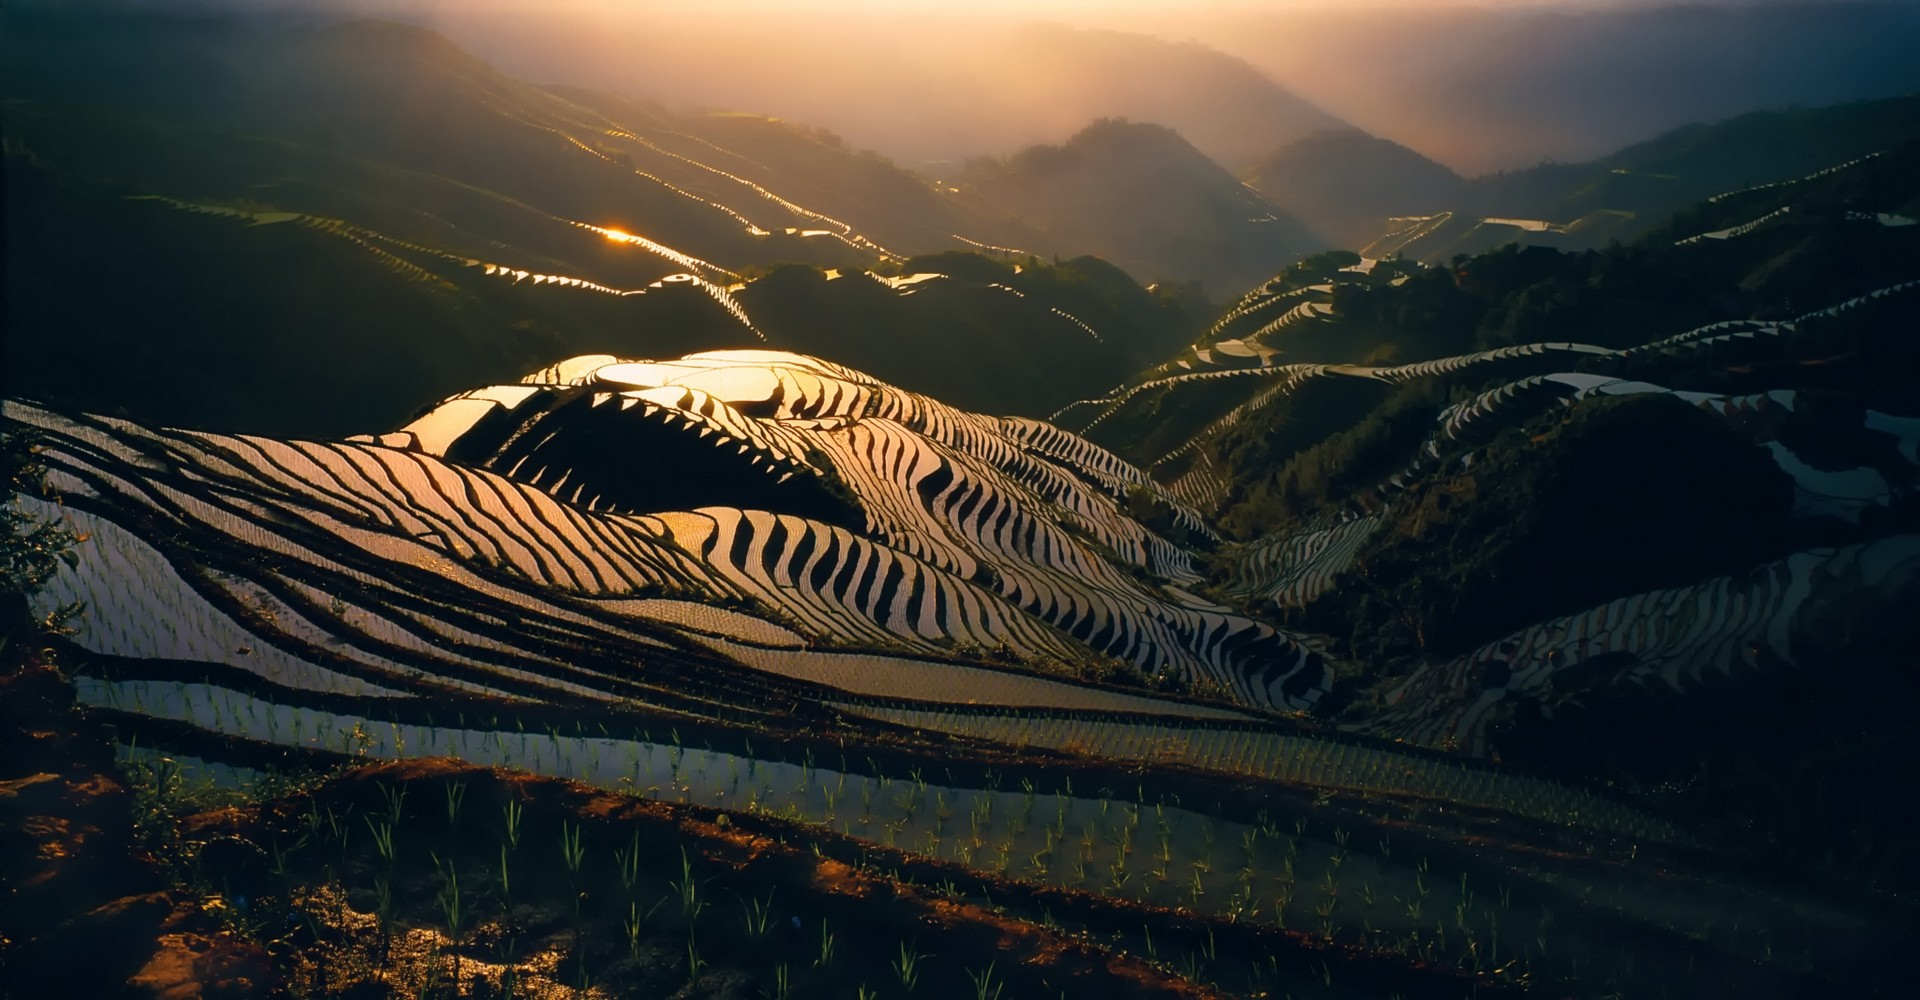 Fall Iphone Wallpaper Pinterest Rice Terrace Wallpaper And Background Image 1920x1000